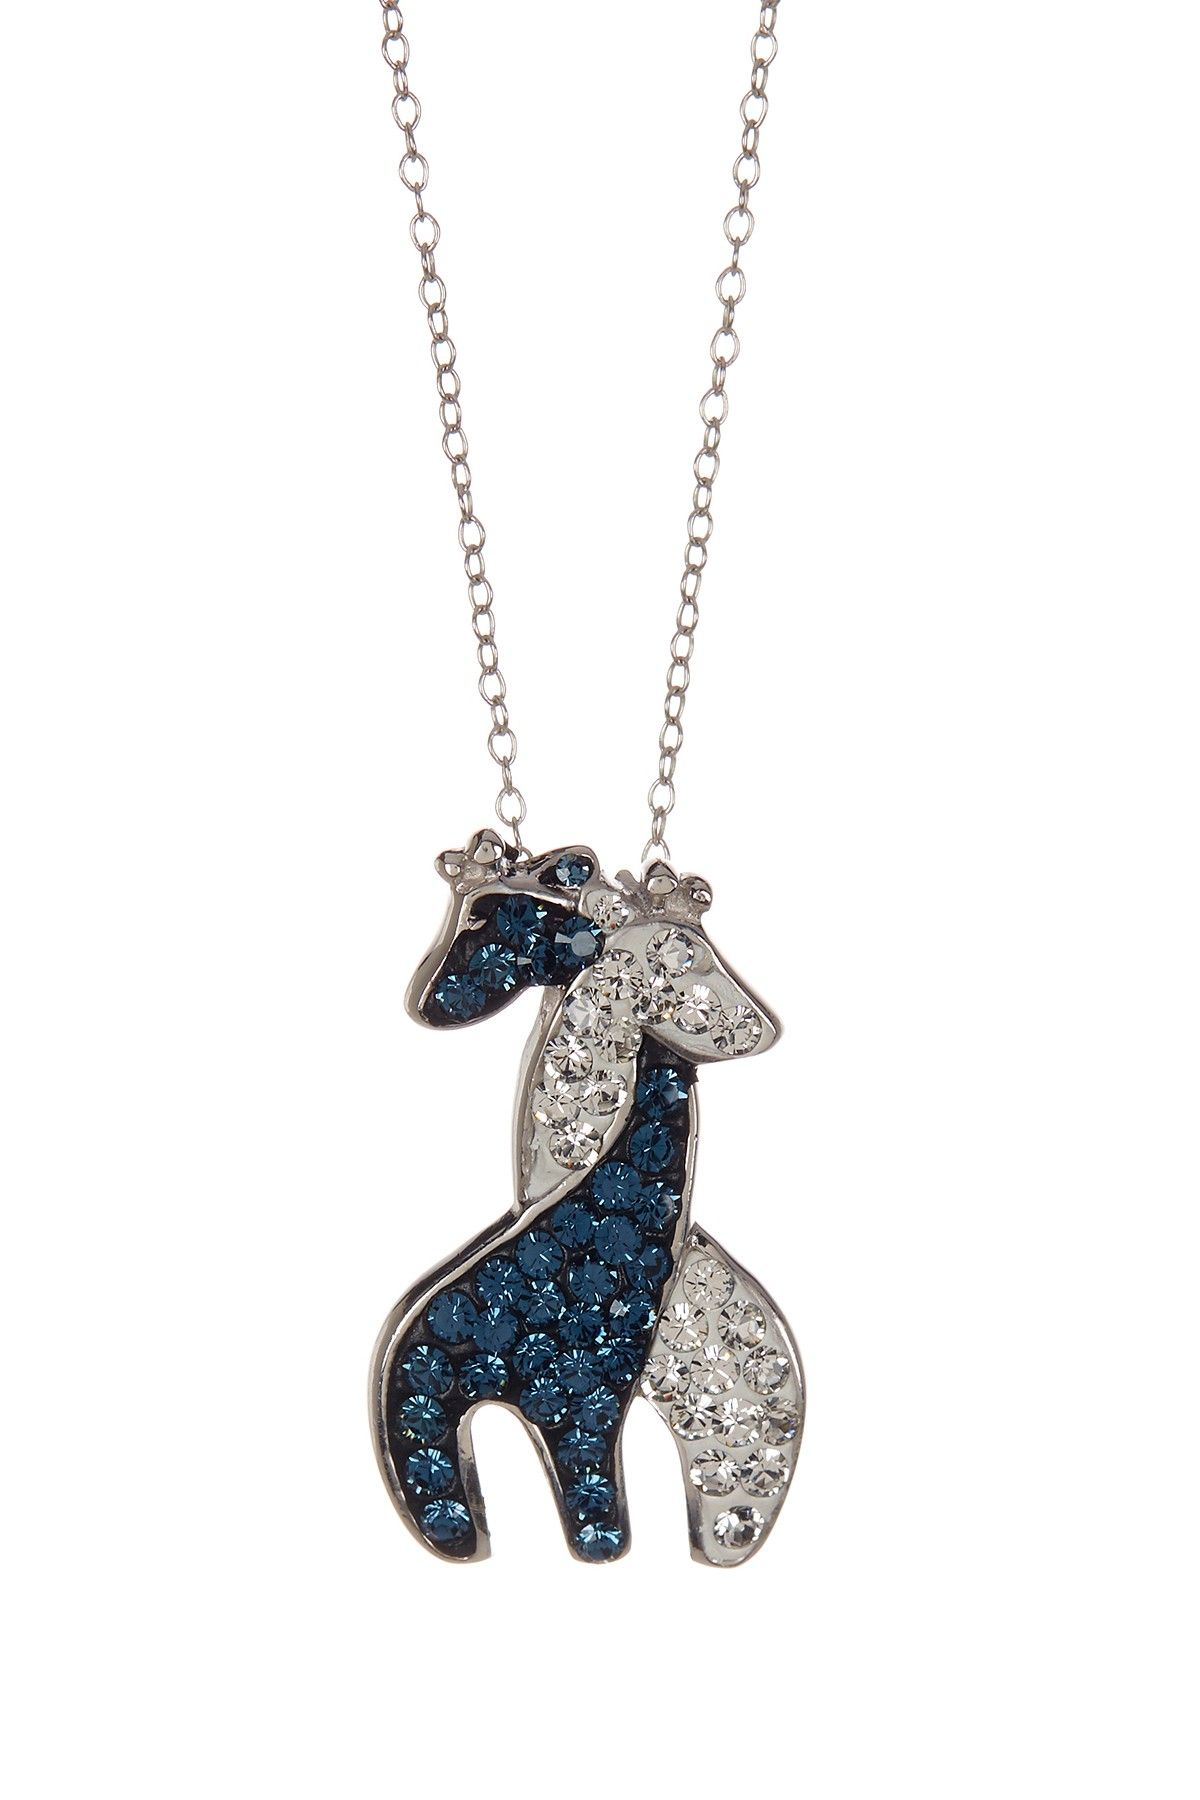 product giraffe necklace pendant sterling image rack silver of shop beck anna nordstrom